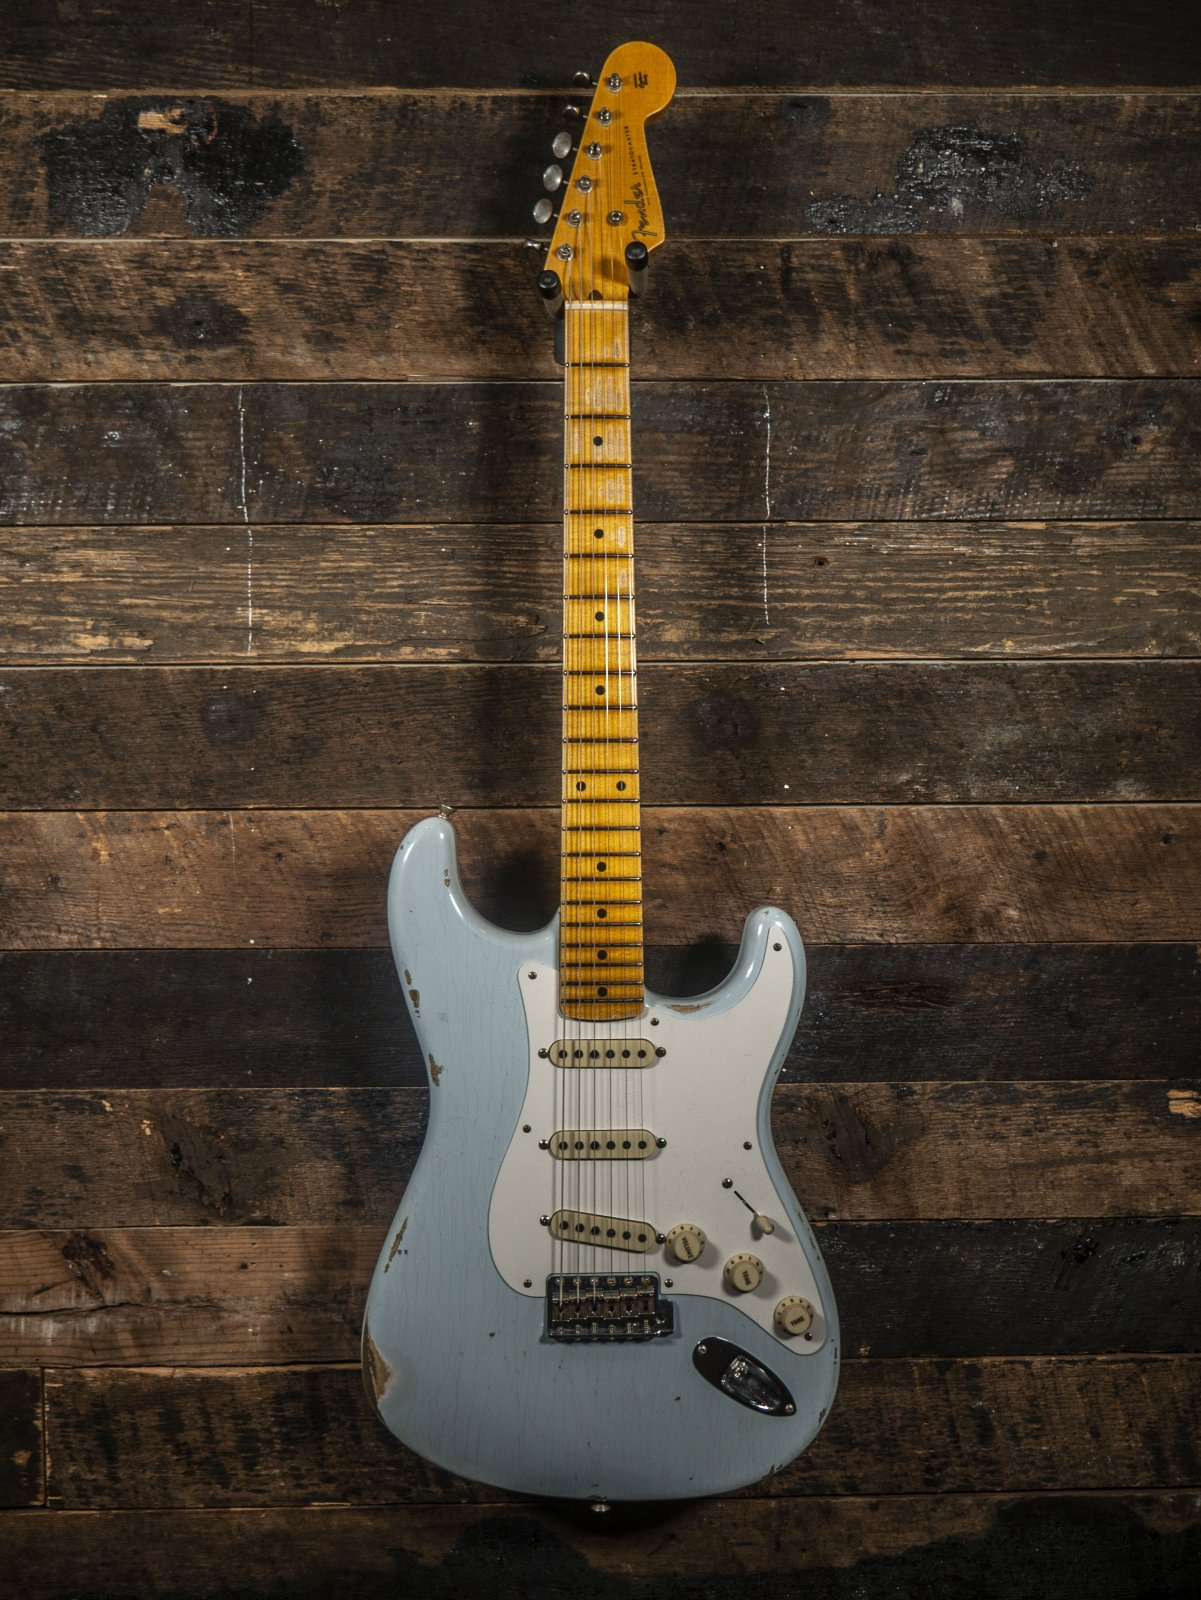 Fender Custom Shop Limited 1956 Heavy Relic Stratocaster Faded Sonic Blue